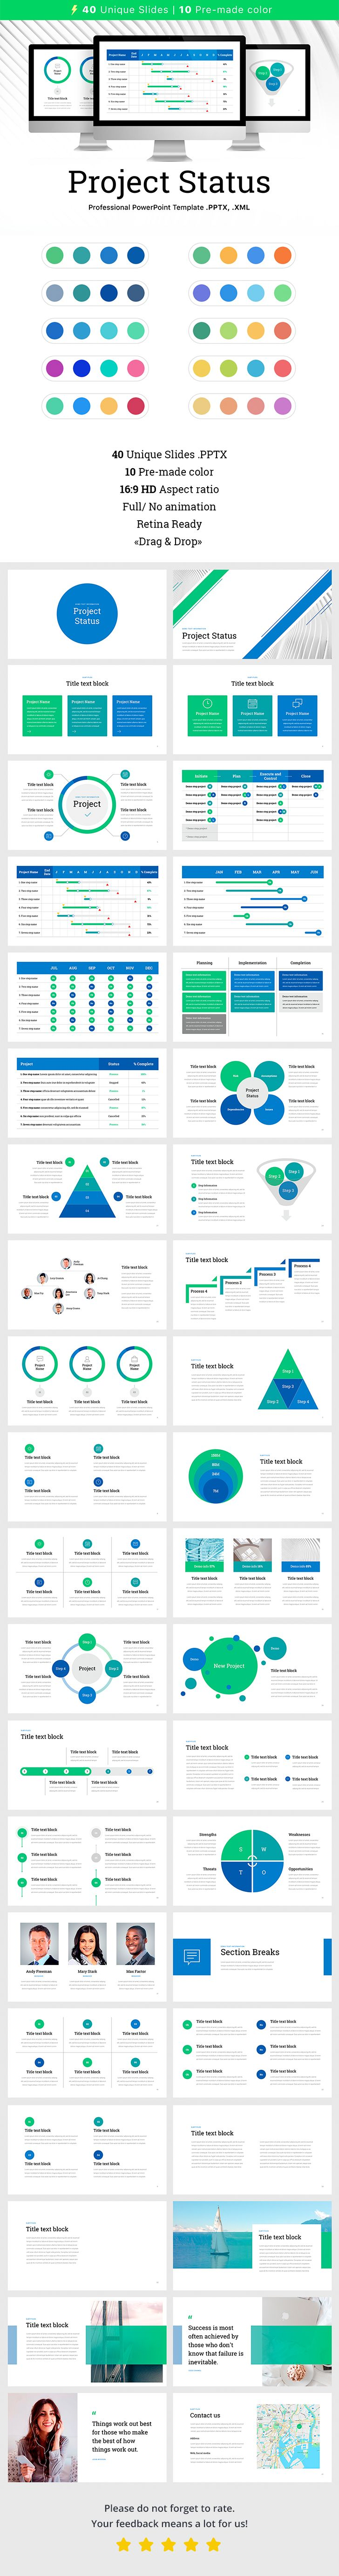 54 best powerpoint template images on pinterest ui ux animation project status report template for powerpoint 40 unique slides 10 pre made color xml files easy to edit color text size no need photoshop no need toneelgroepblik Images